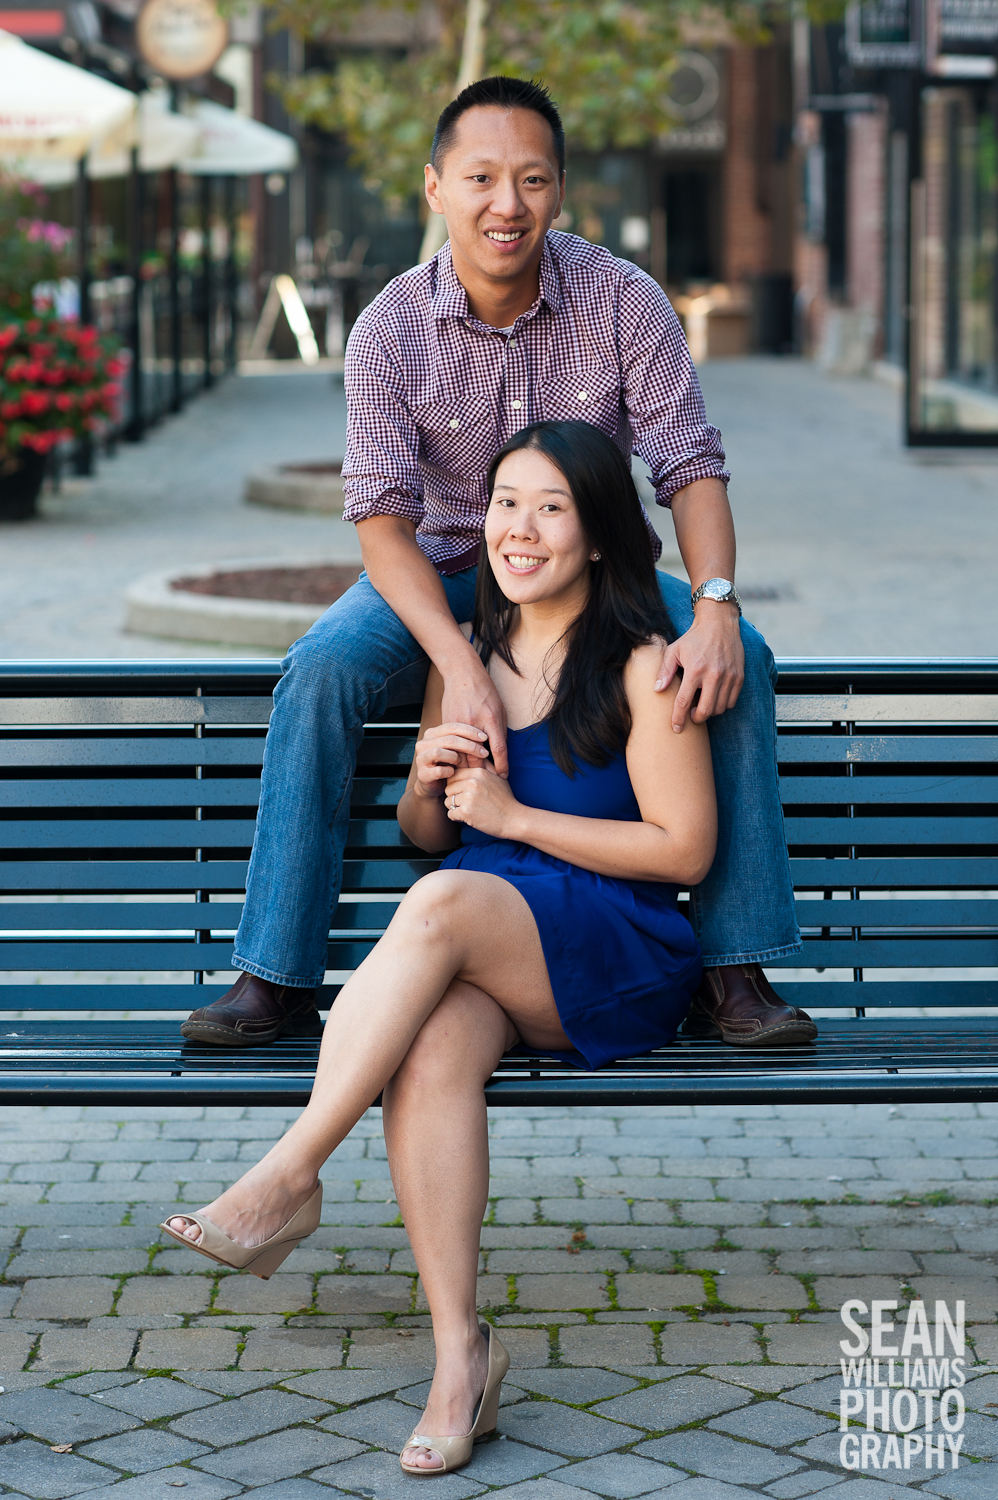 engagement-lifestyle-photographer-toronto-edmonton-3.jpg